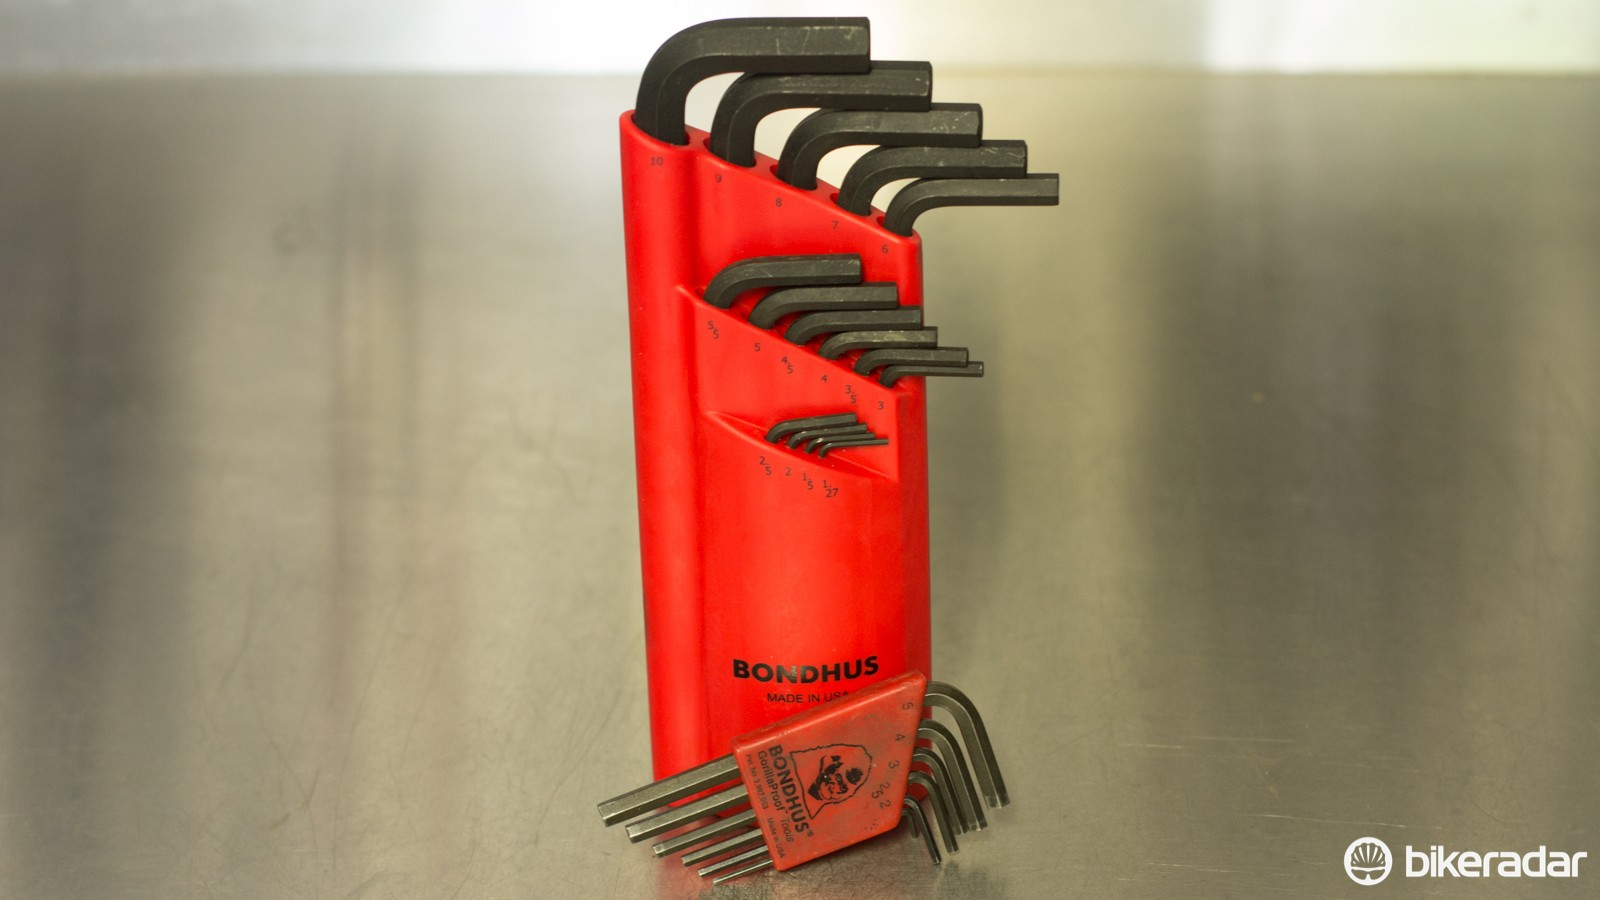 Bondhus hex wrenches are a safe bet for quality and value for money. They are easily sourced through general hardware stores too